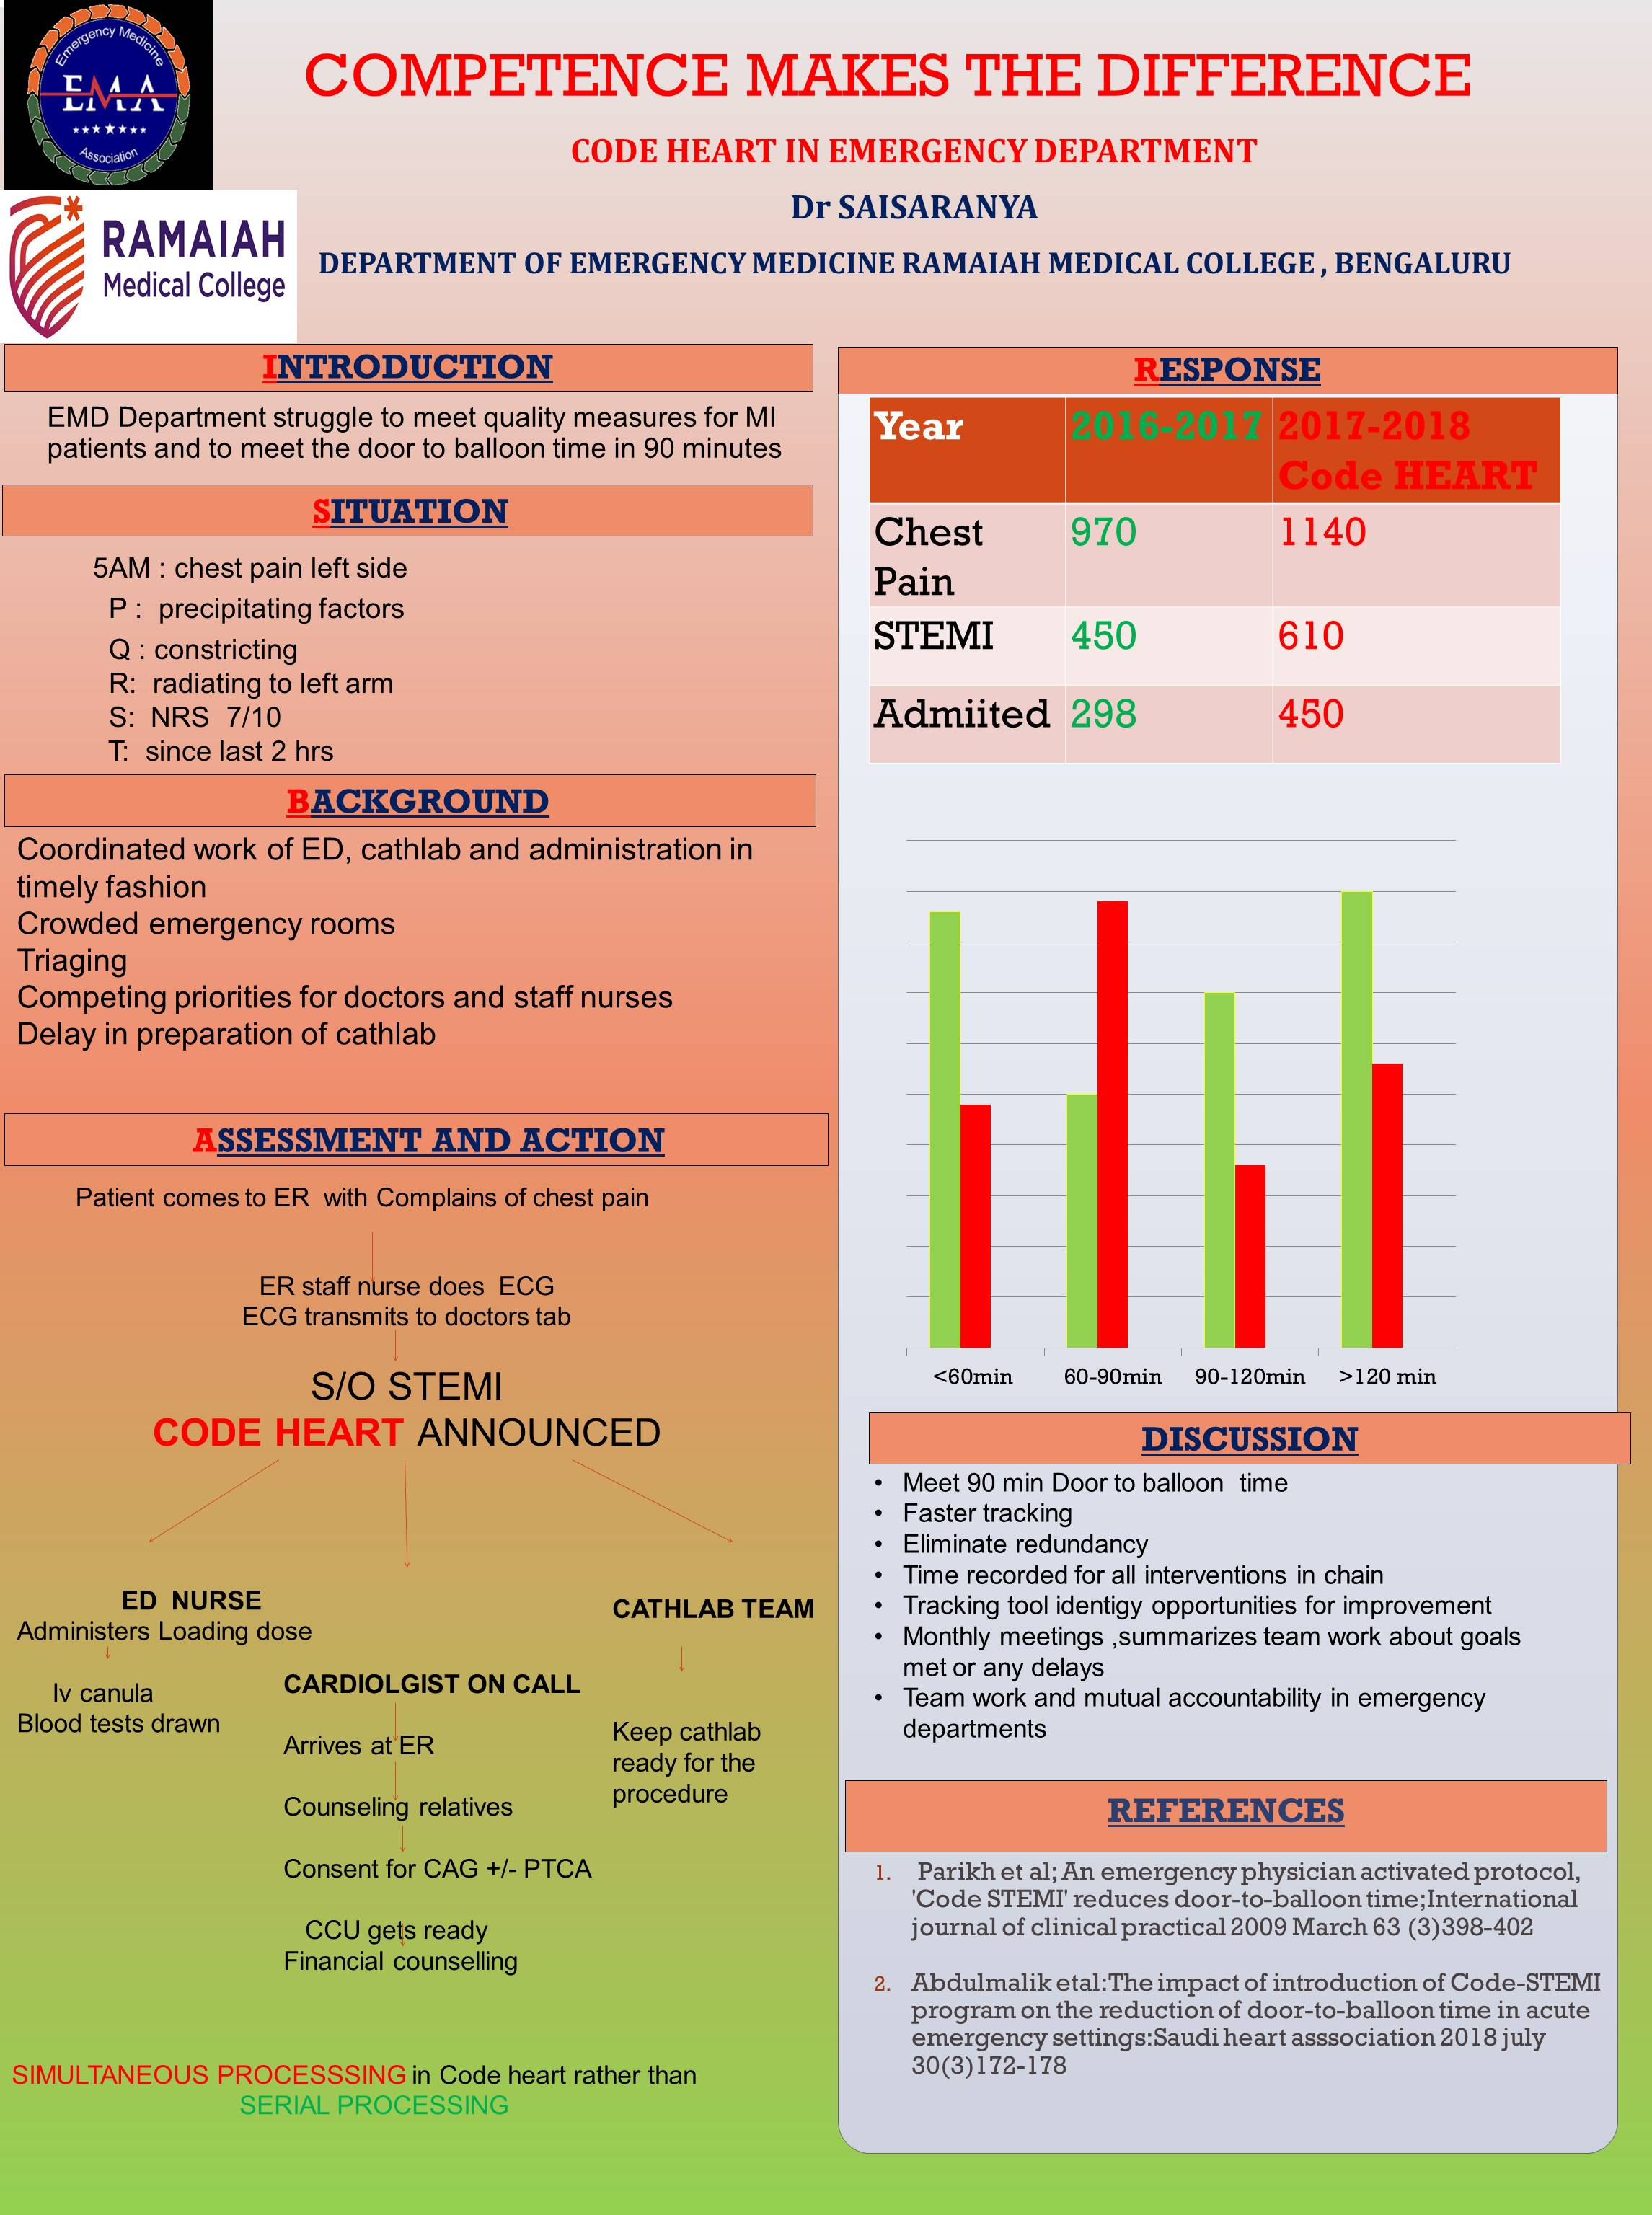 Emergency Medicine Day - Results from the Indian poster